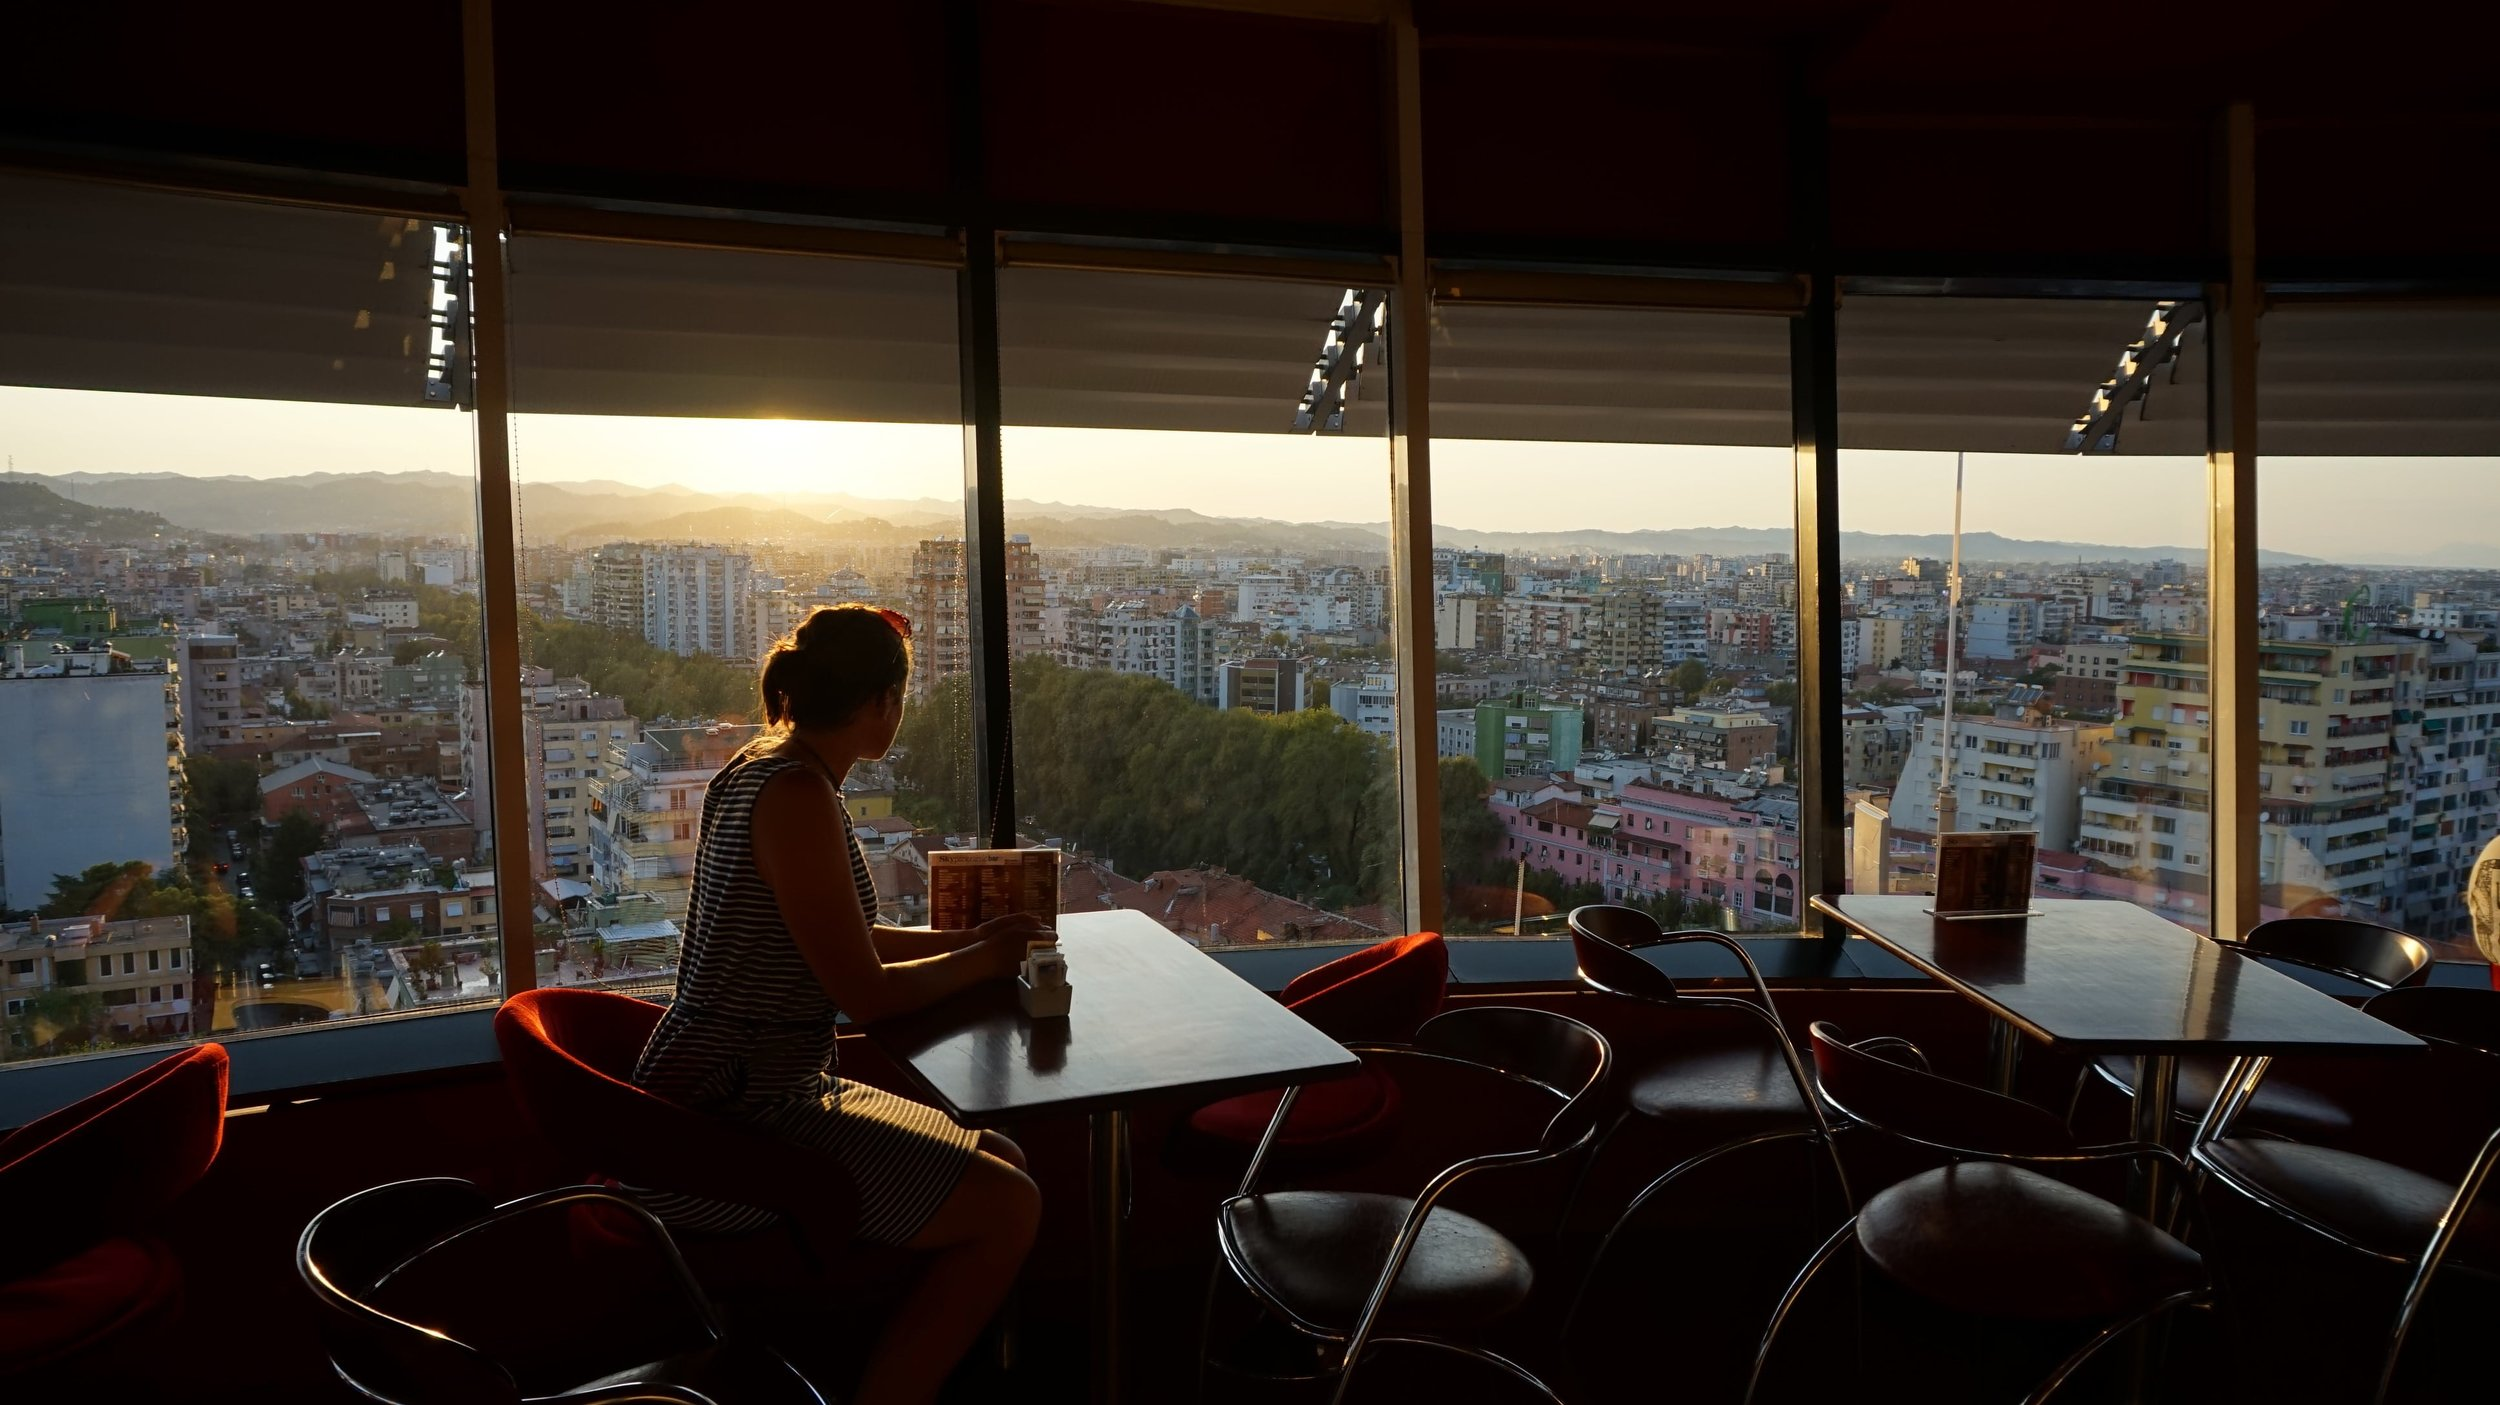 One of the best things to do in Albania is visit the rotating bar in Tirana